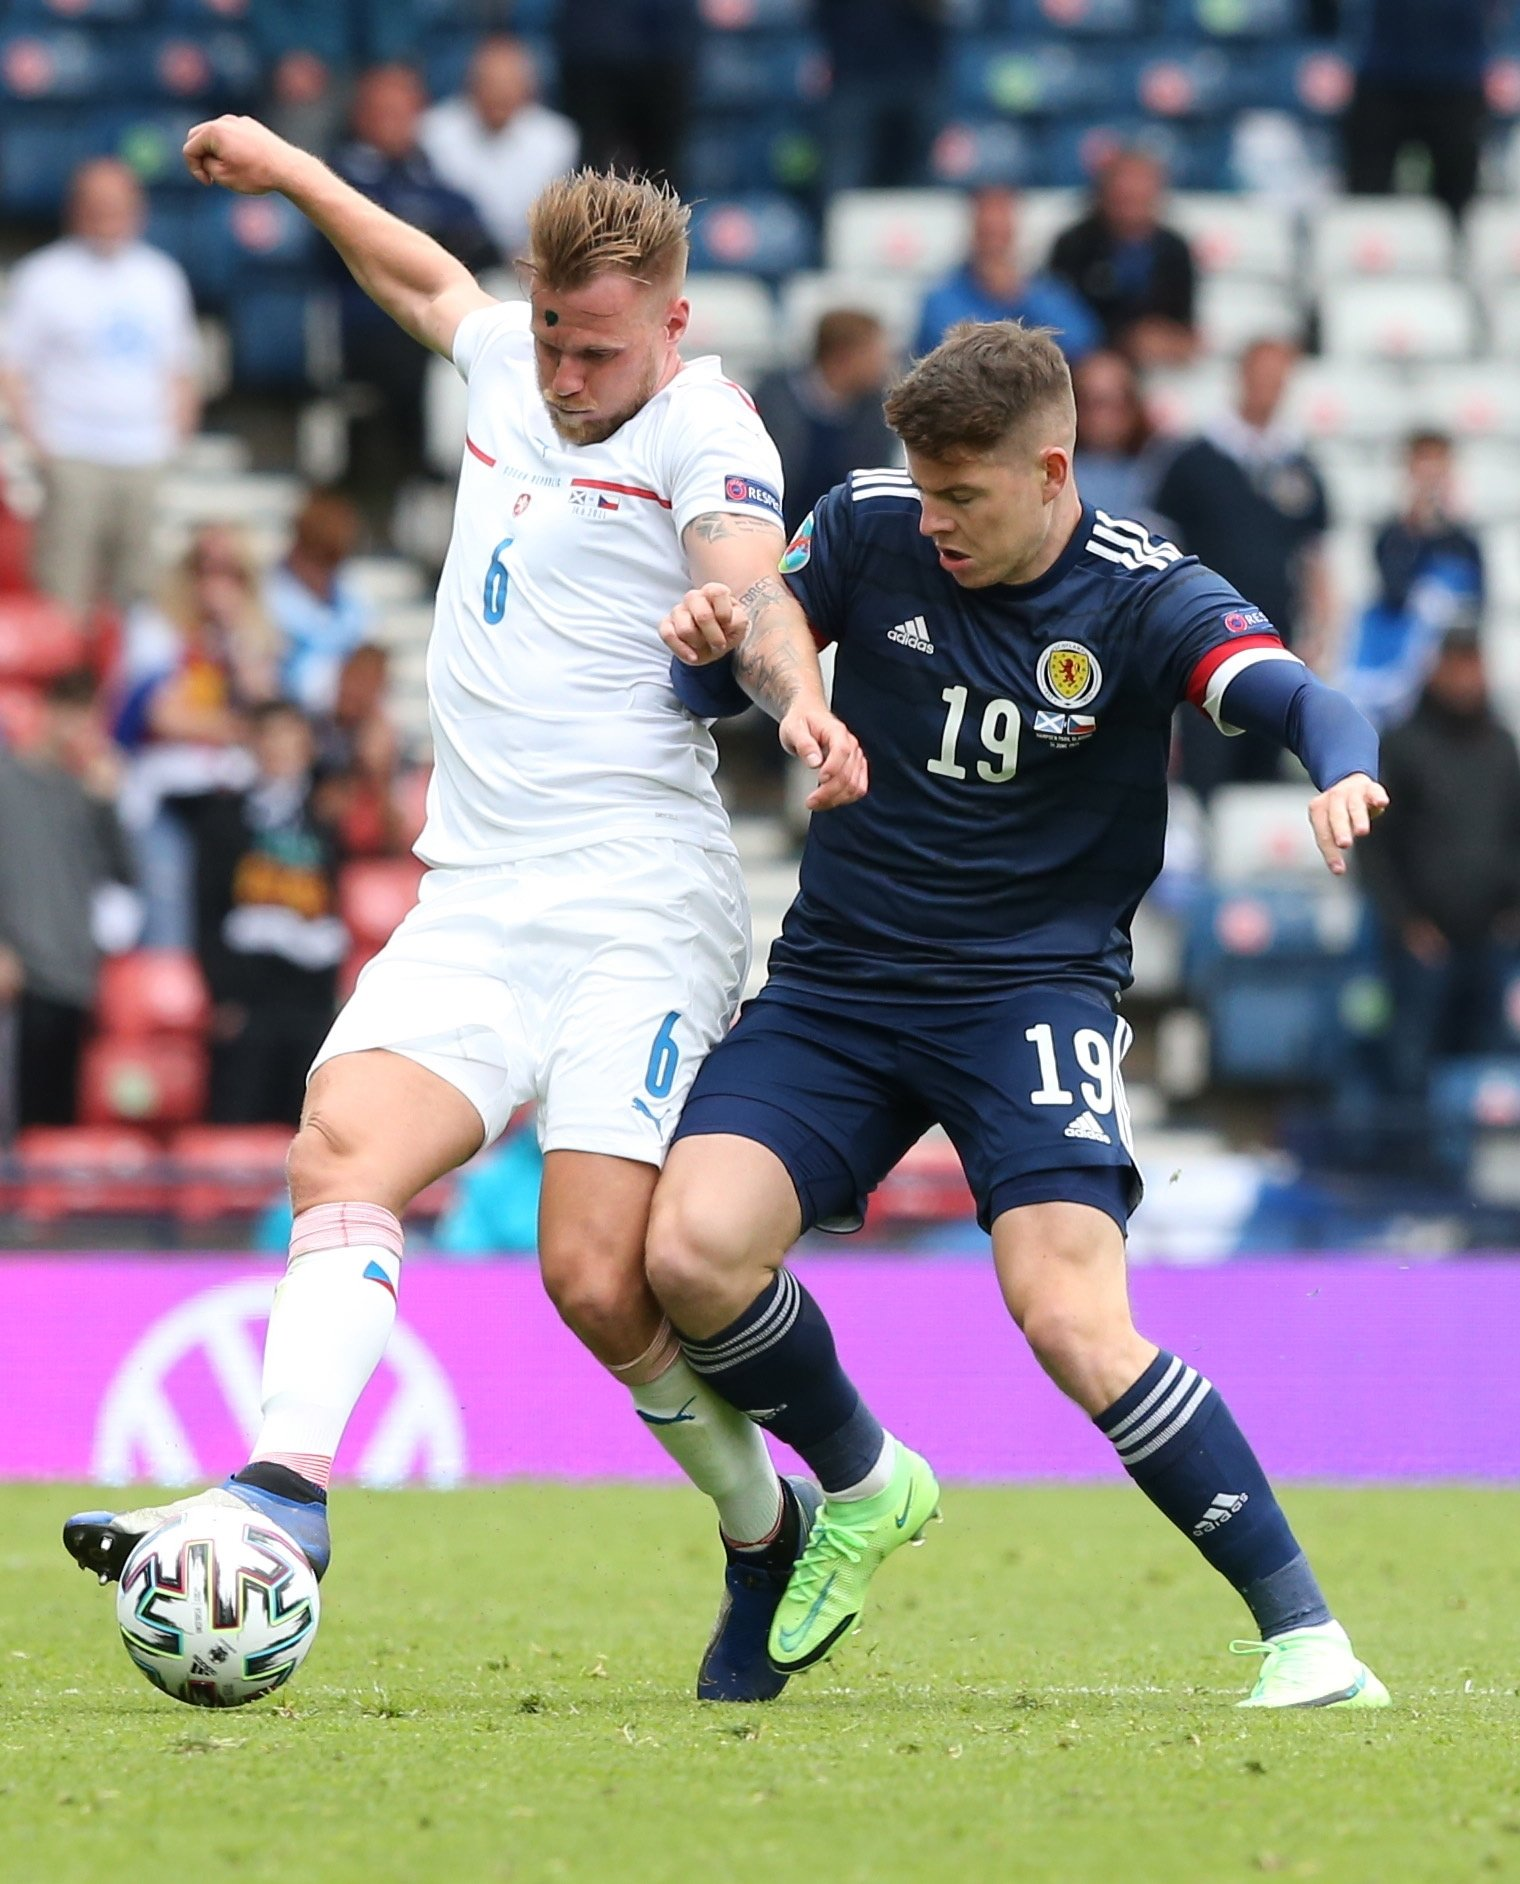 Scotland's Kevin Nisbet (R) in action against the Czech Republic's Tomas Kalas during their UEFA EURO 2020 Group D match in Glasgow, Scotland, June 14, 2021. (EPA Photo)